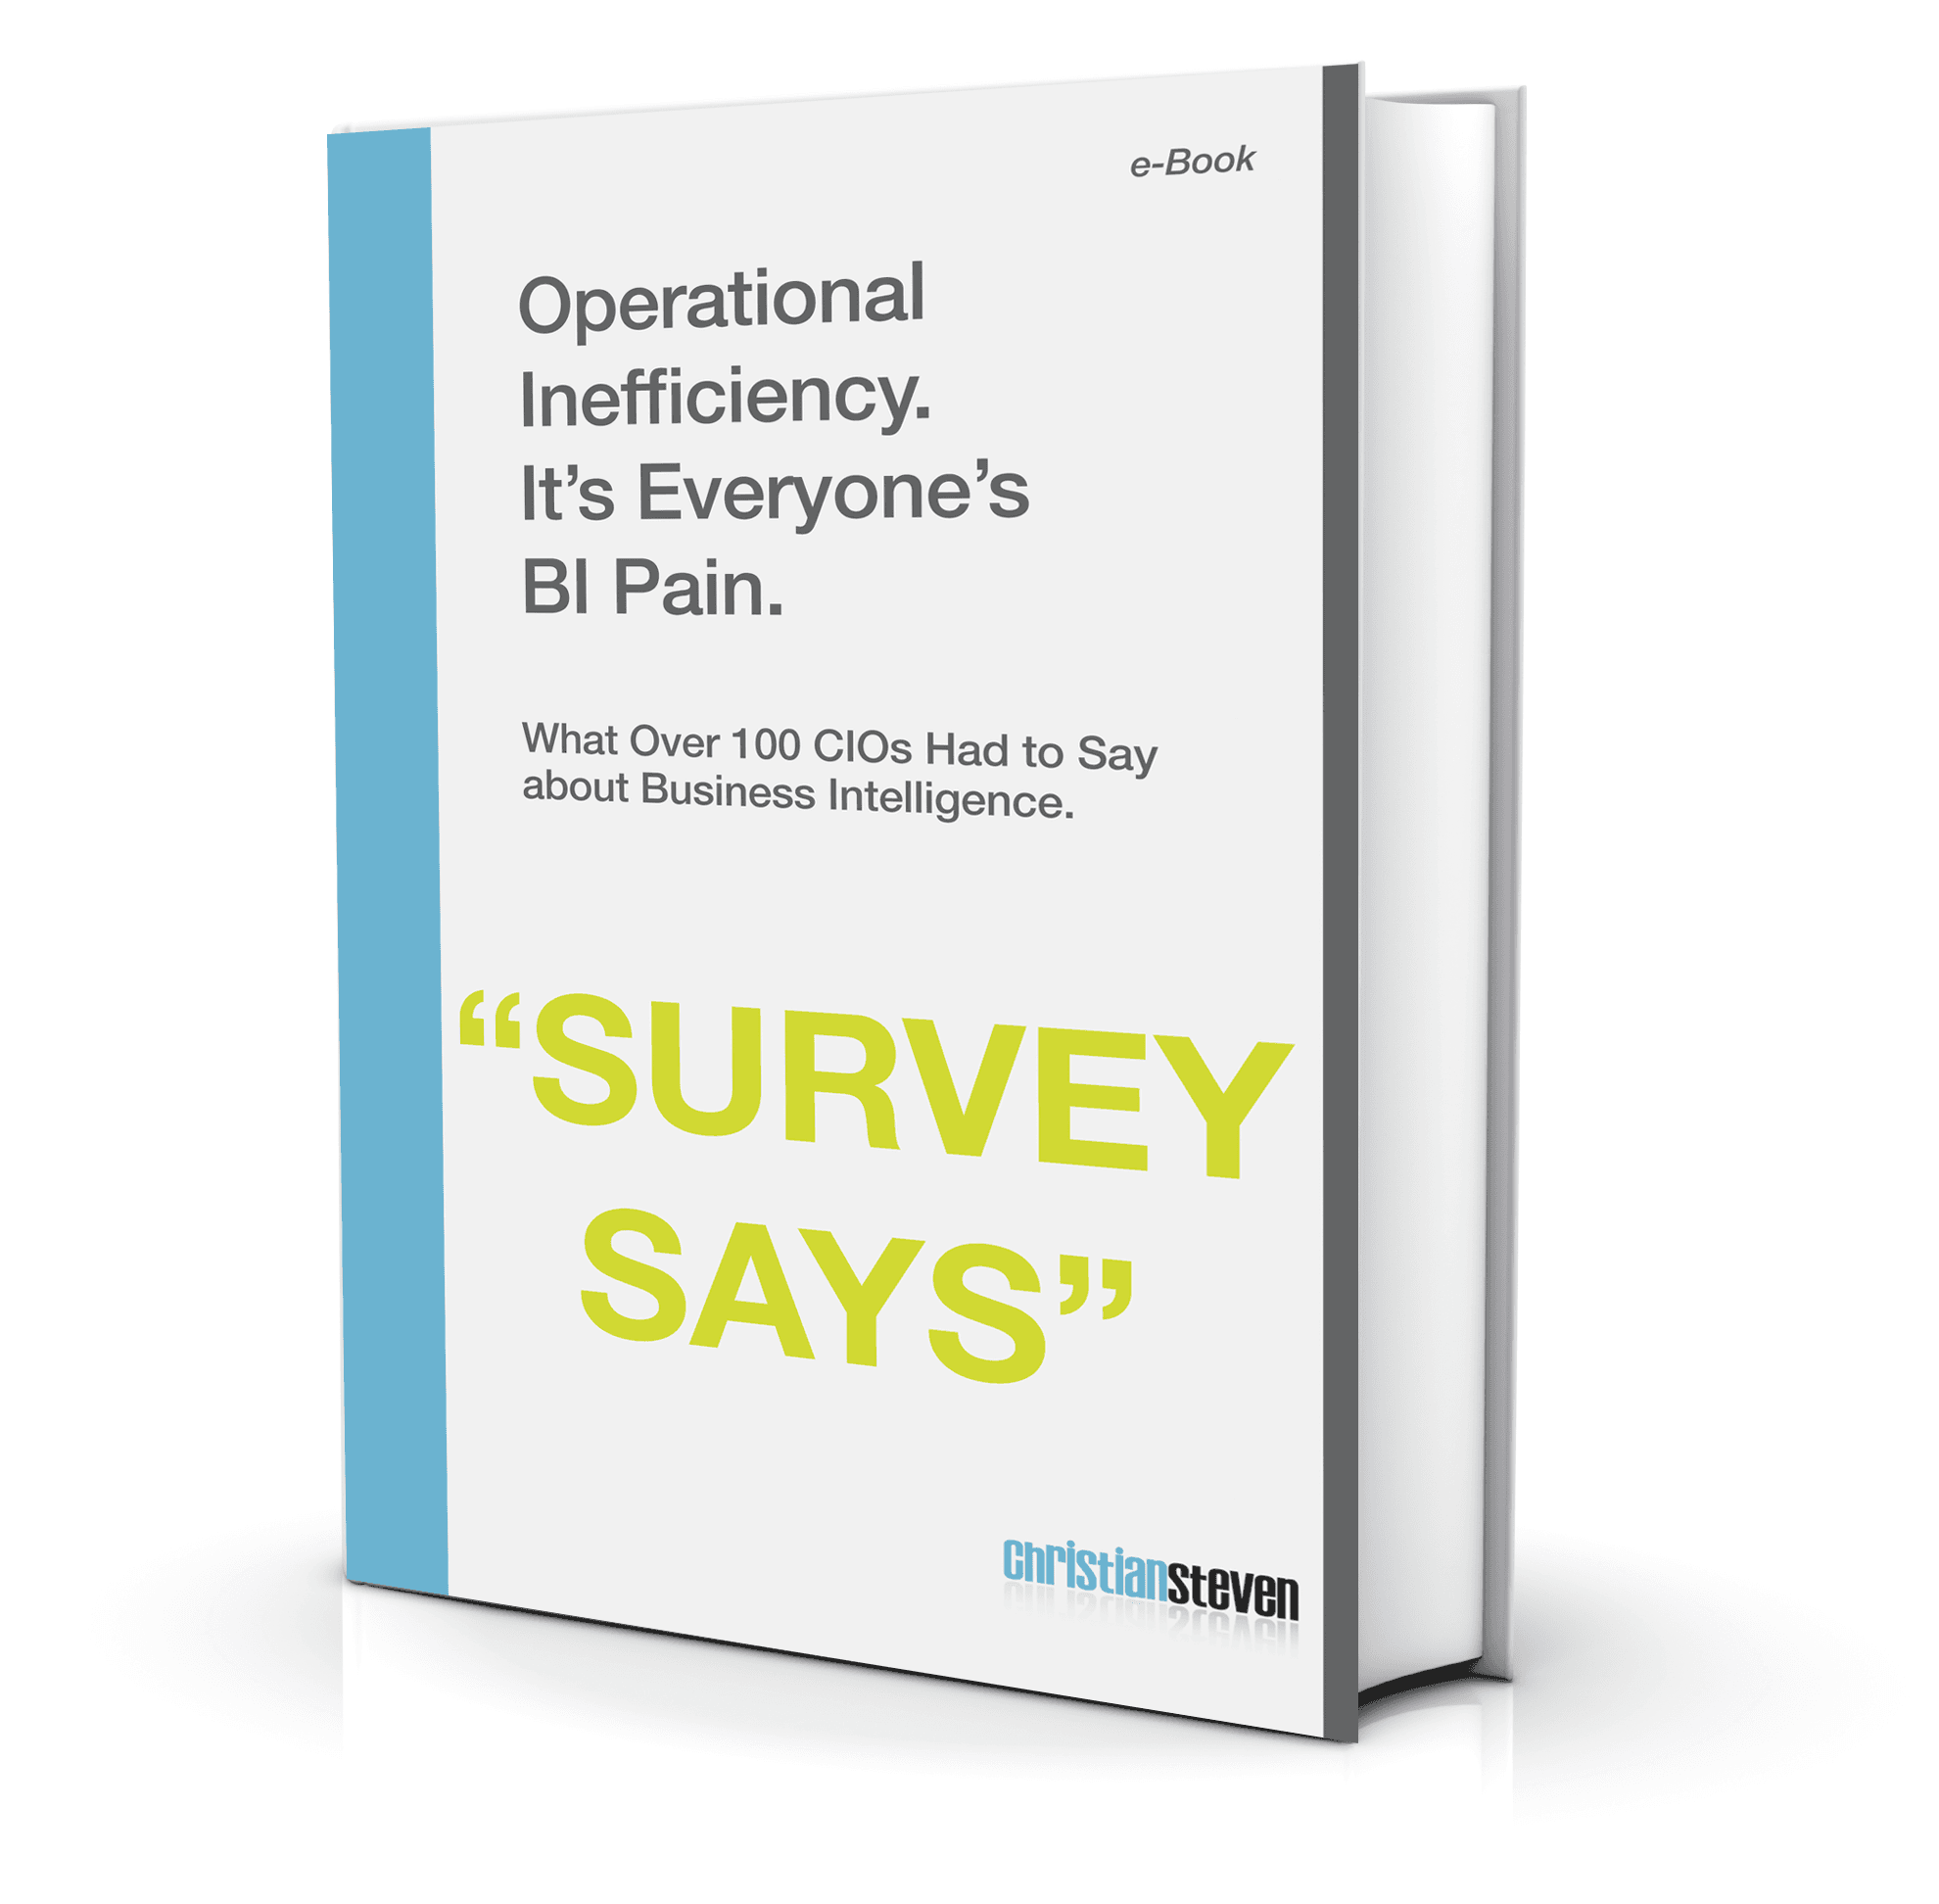 Operational Inefficiency in BI